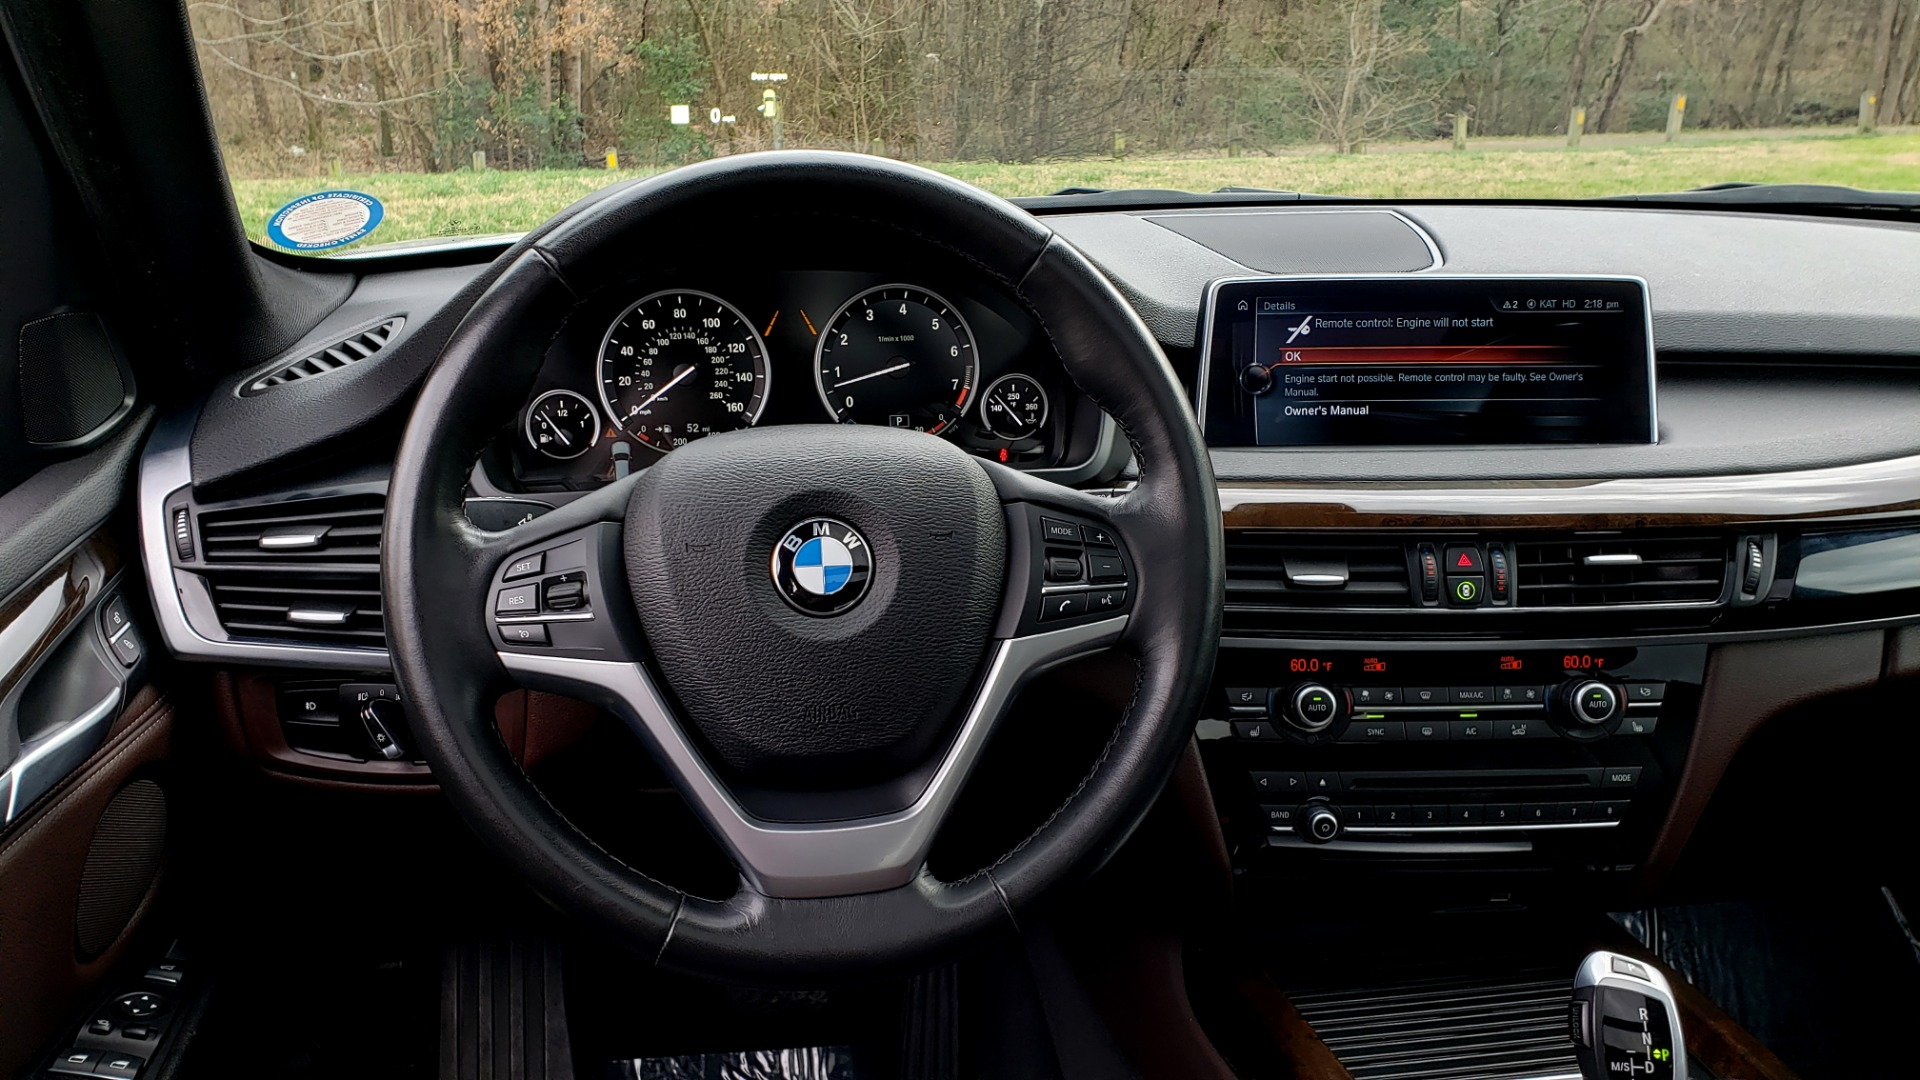 Used 2017 BMW X5 XDRIVE35I / NAV / HUD / DRVR ASST / SUNROOF / REARVIEW for sale Sold at Formula Imports in Charlotte NC 28227 38